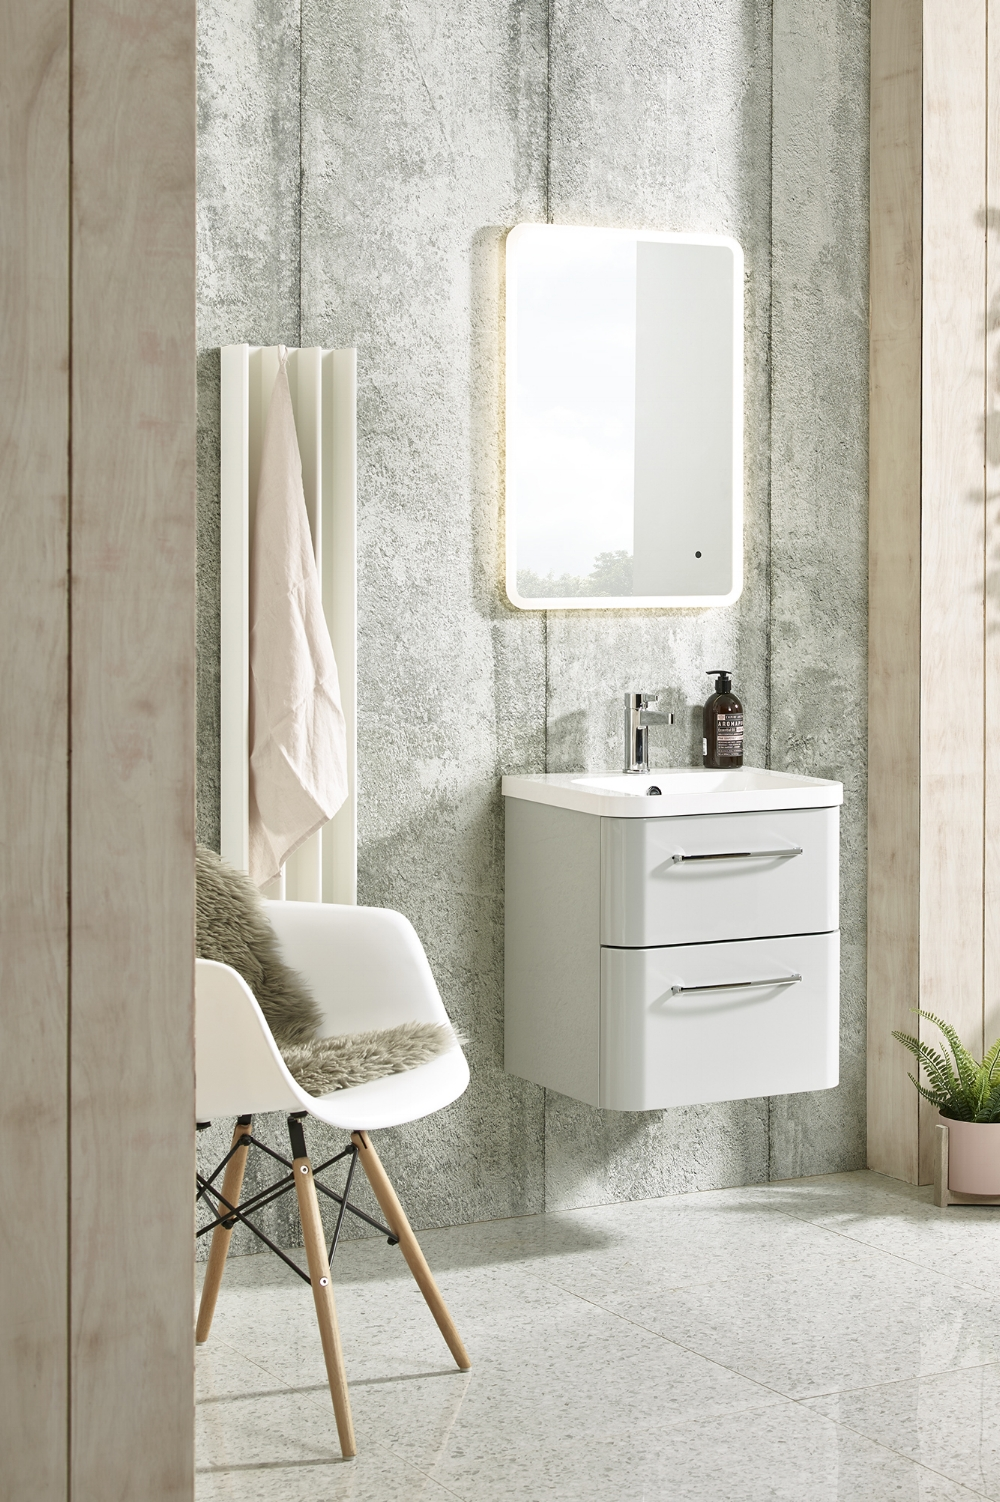 Perfectly Formed - Few of us have the luxury of a large home, never mind a palatial bathroom. Fortunately, there are simple steps and clever styling tricks you can employ to create a soothing, tranquil bathroom that at least feels more spacious than it is!